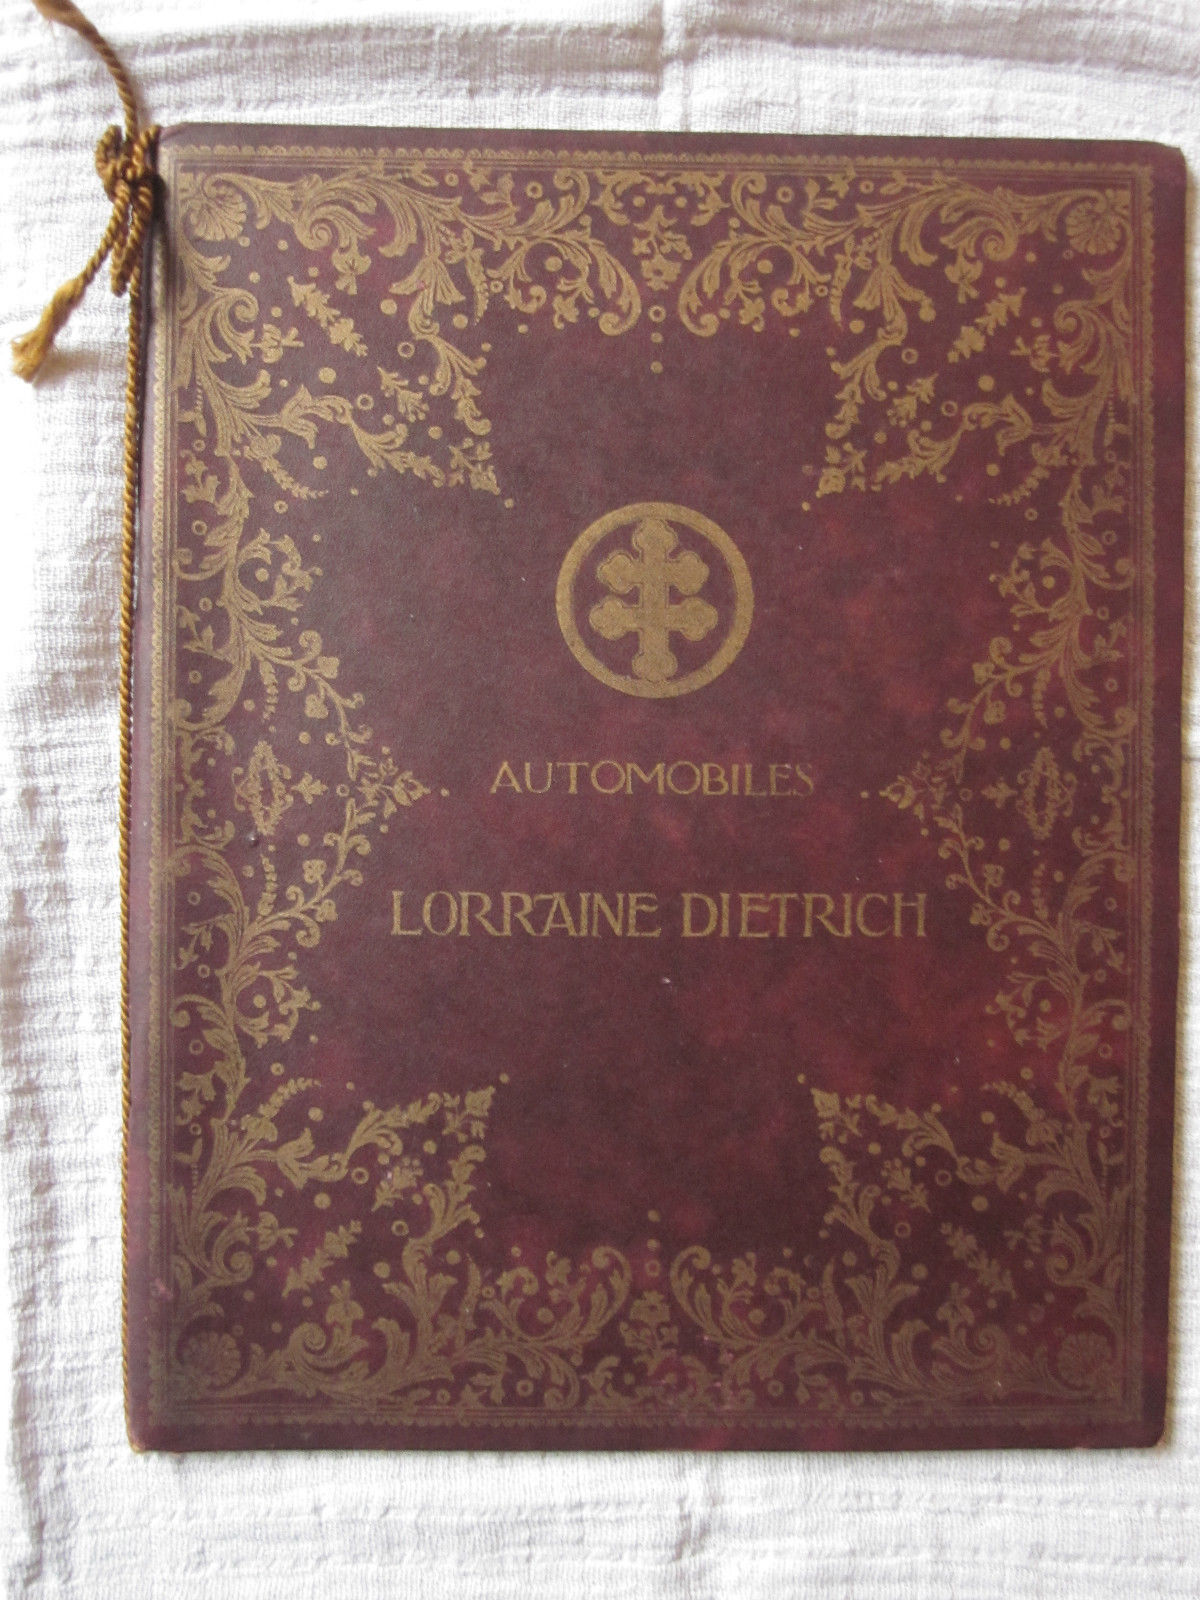 catalogue lorraine dietrich de 1909 patrimoineautomobile com. Black Bedroom Furniture Sets. Home Design Ideas